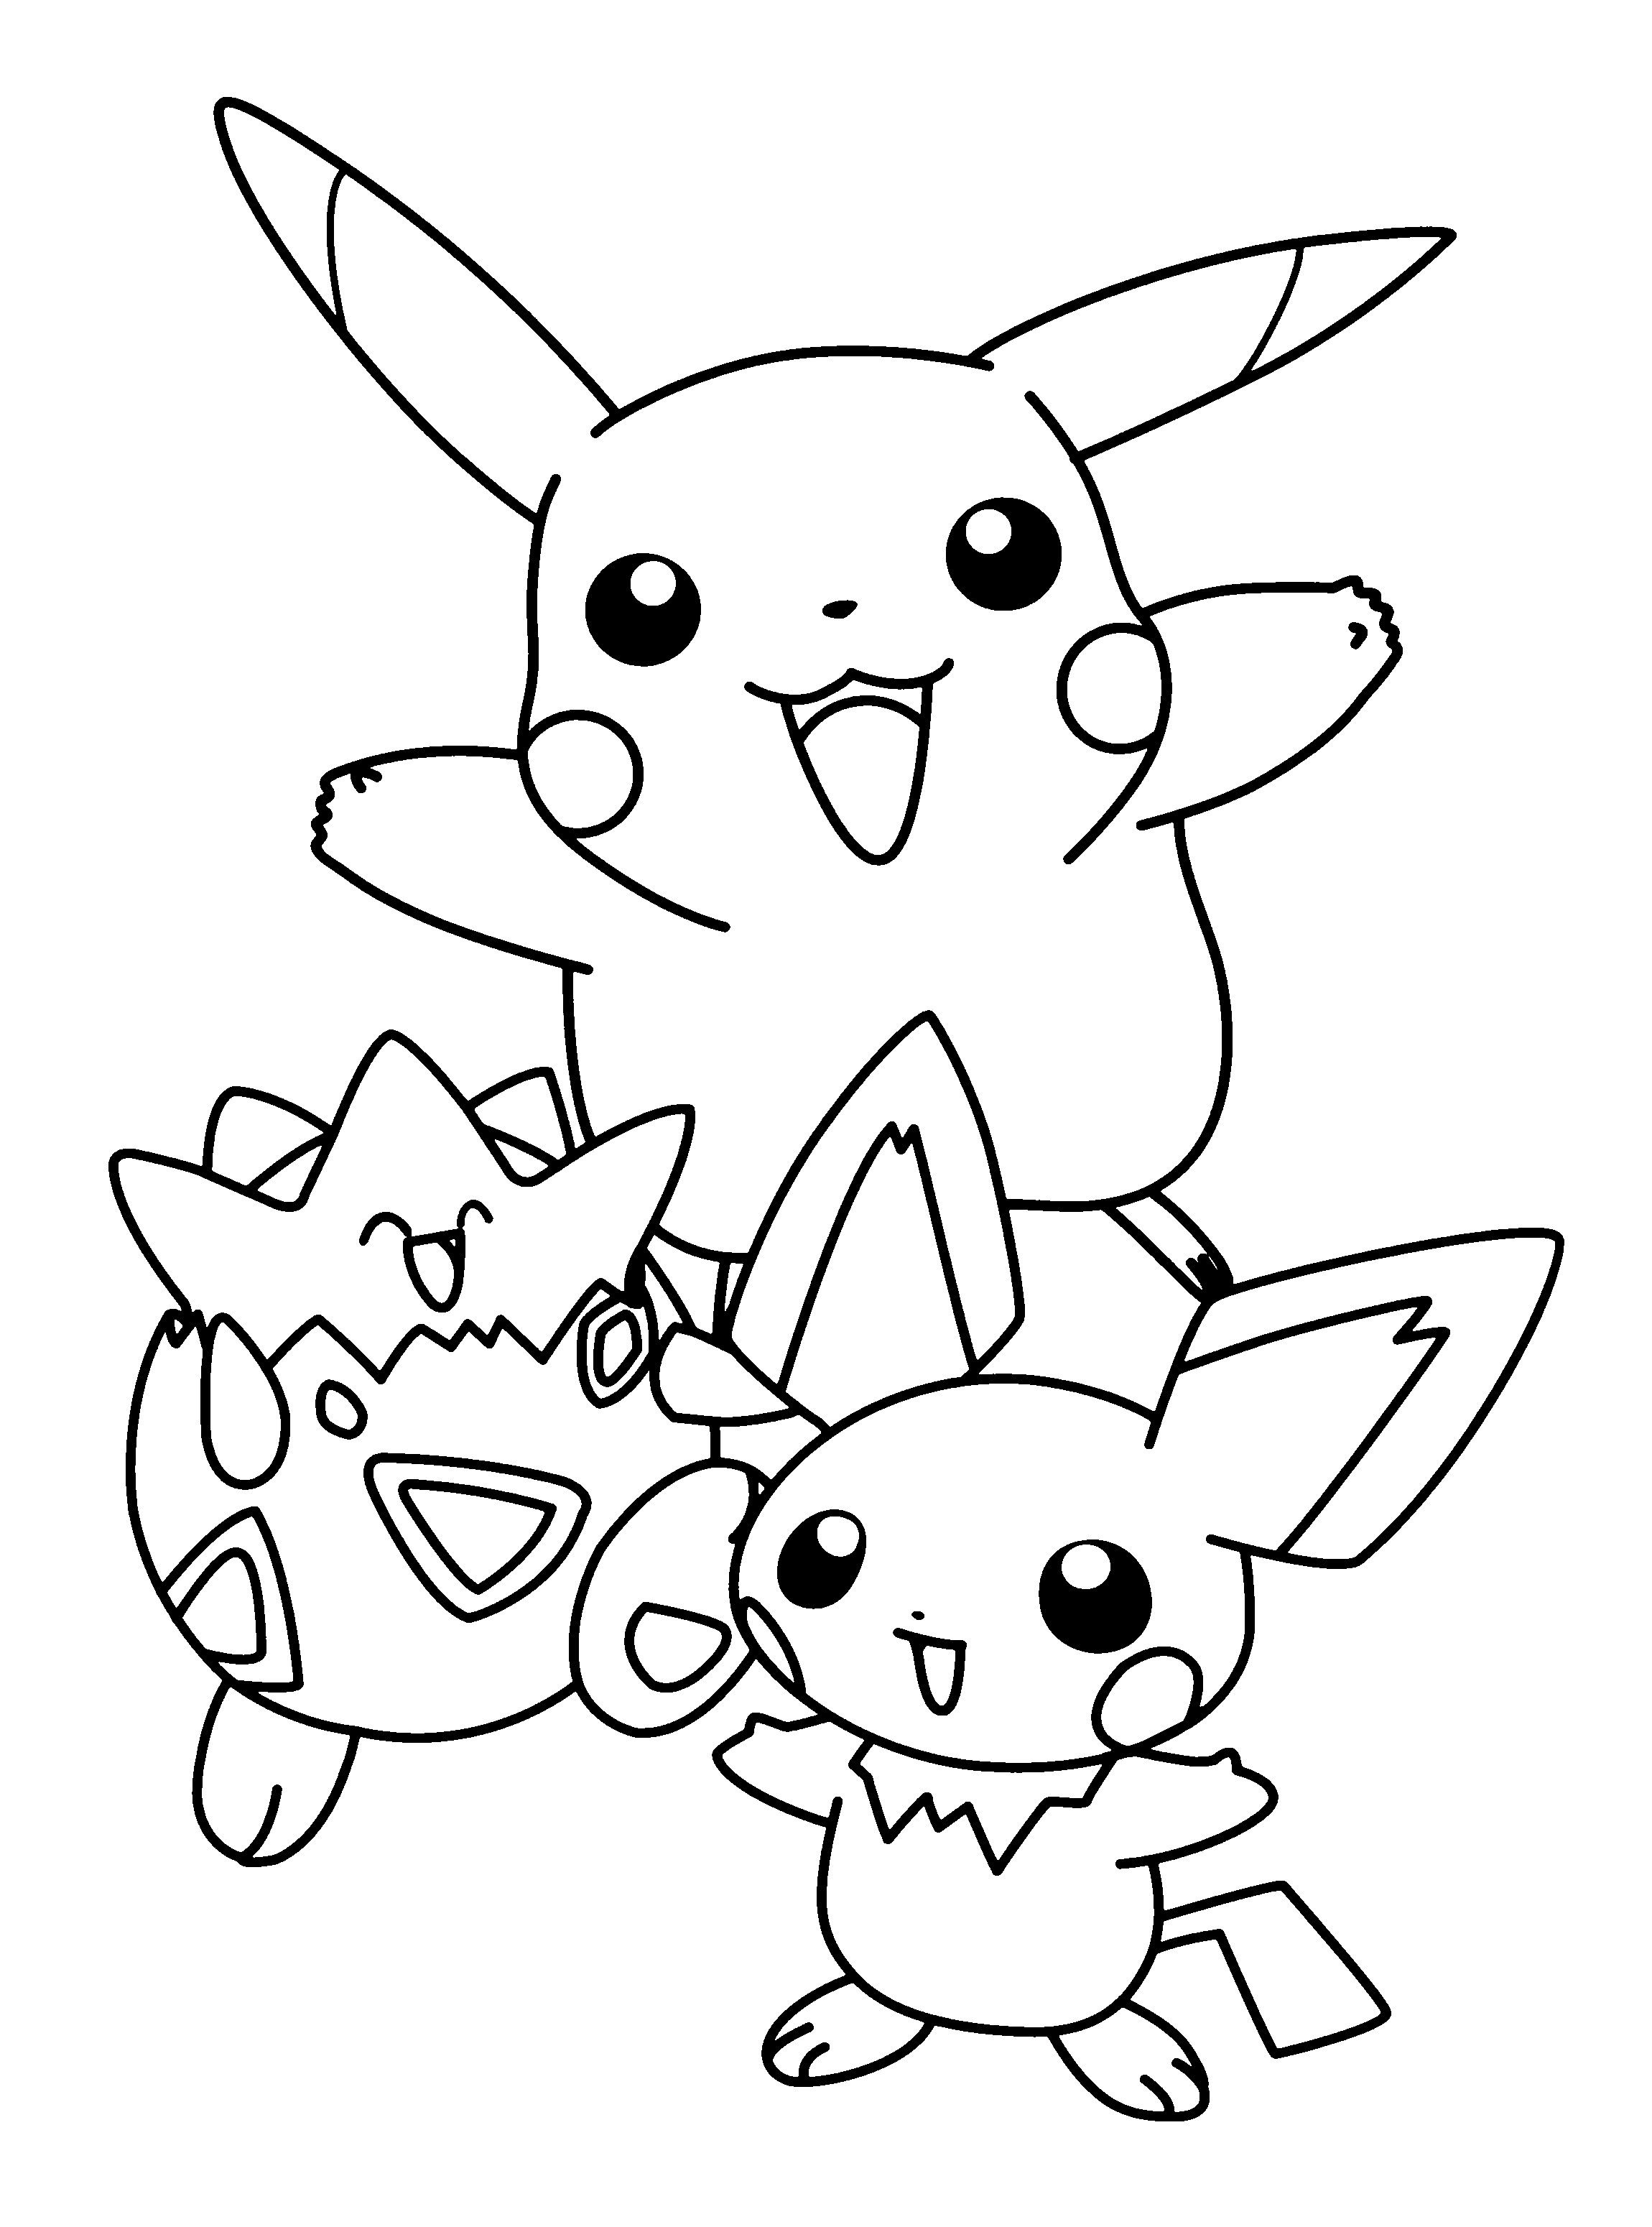 Pikachu And Charmander Coloring Pages From The Thousands Of Pictures On Line With Regard Pikachu Coloring Page Cartoon Coloring Pages Pokemon Coloring Sheets